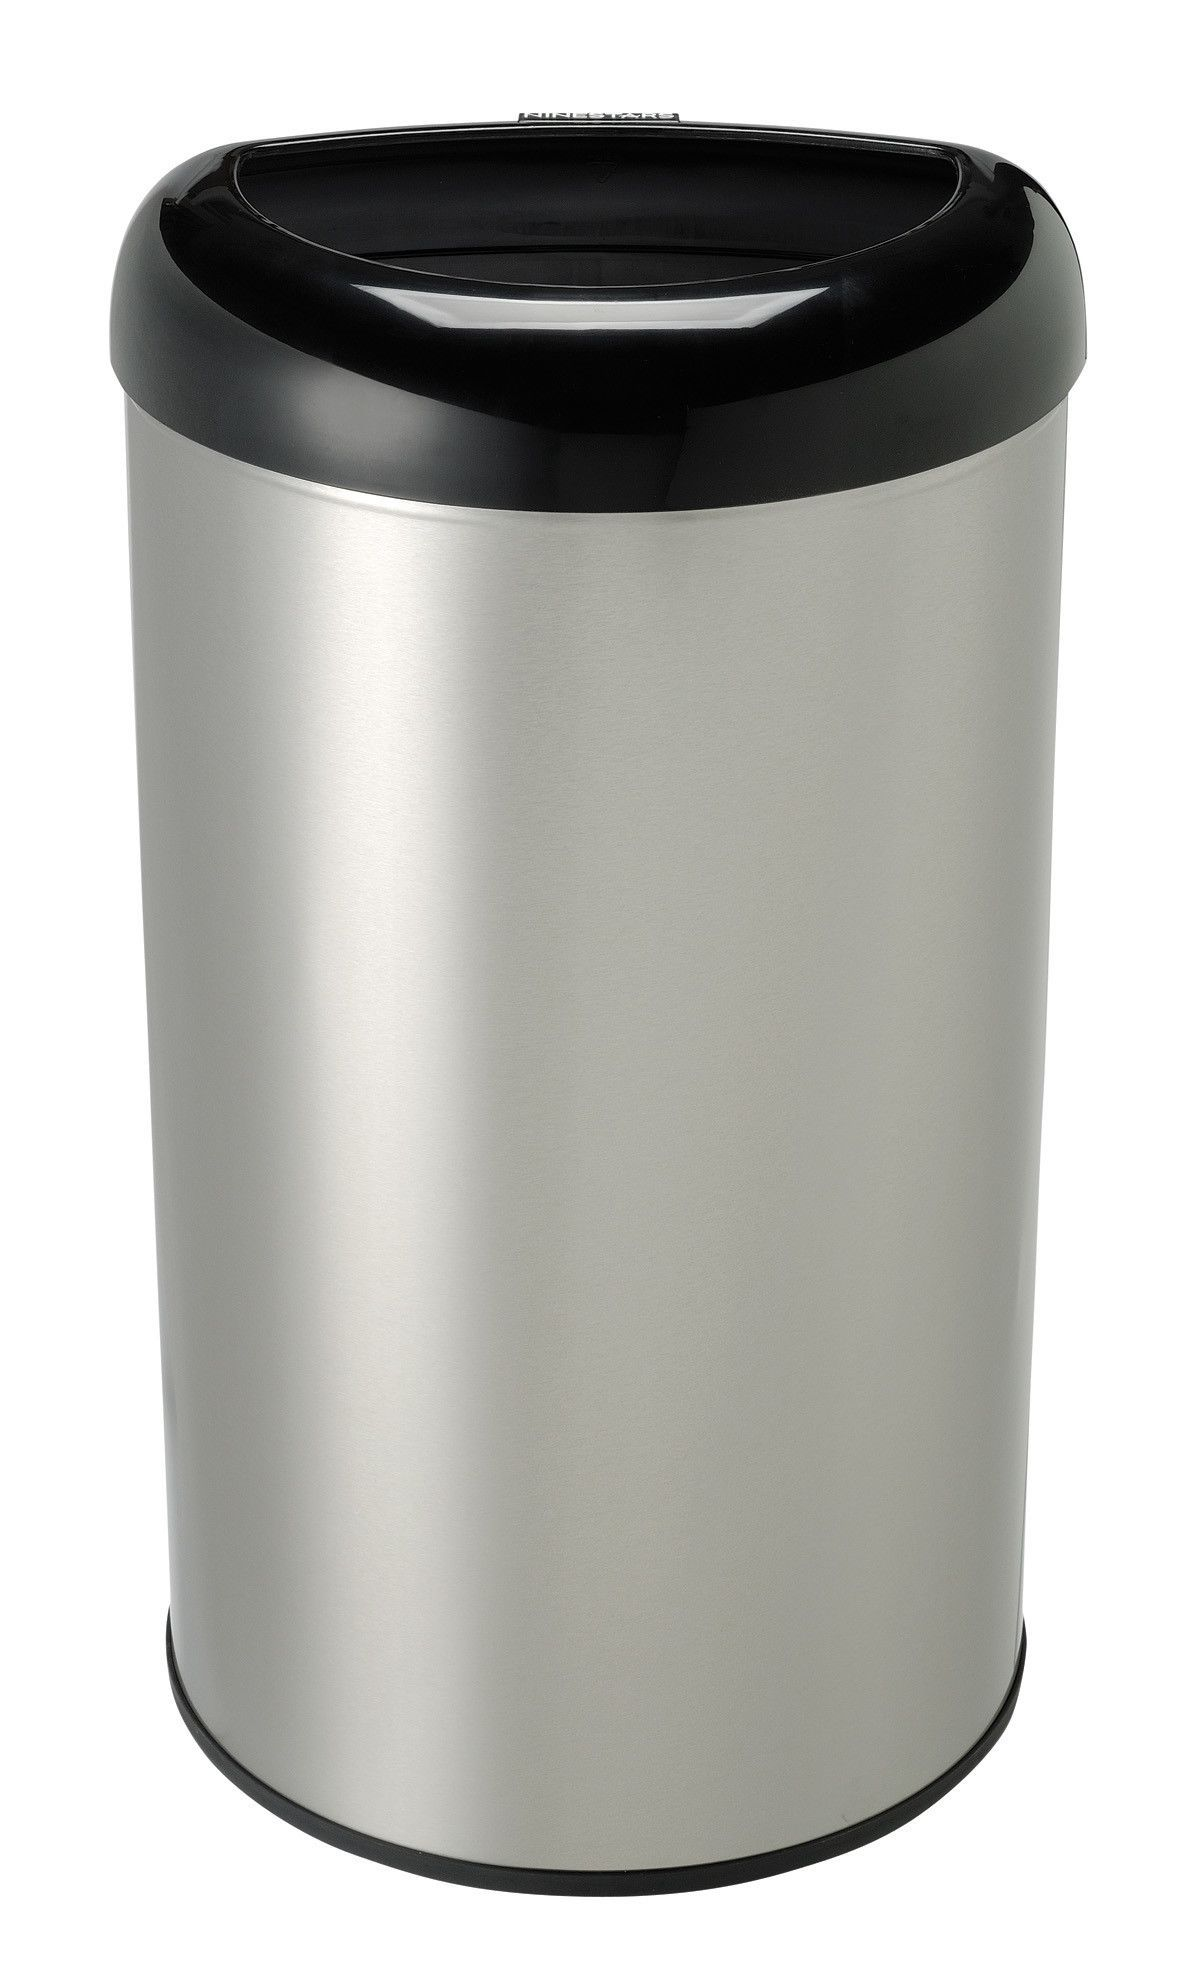 Stainless Steel 13 2 Gallon Open Top Trash Can Products